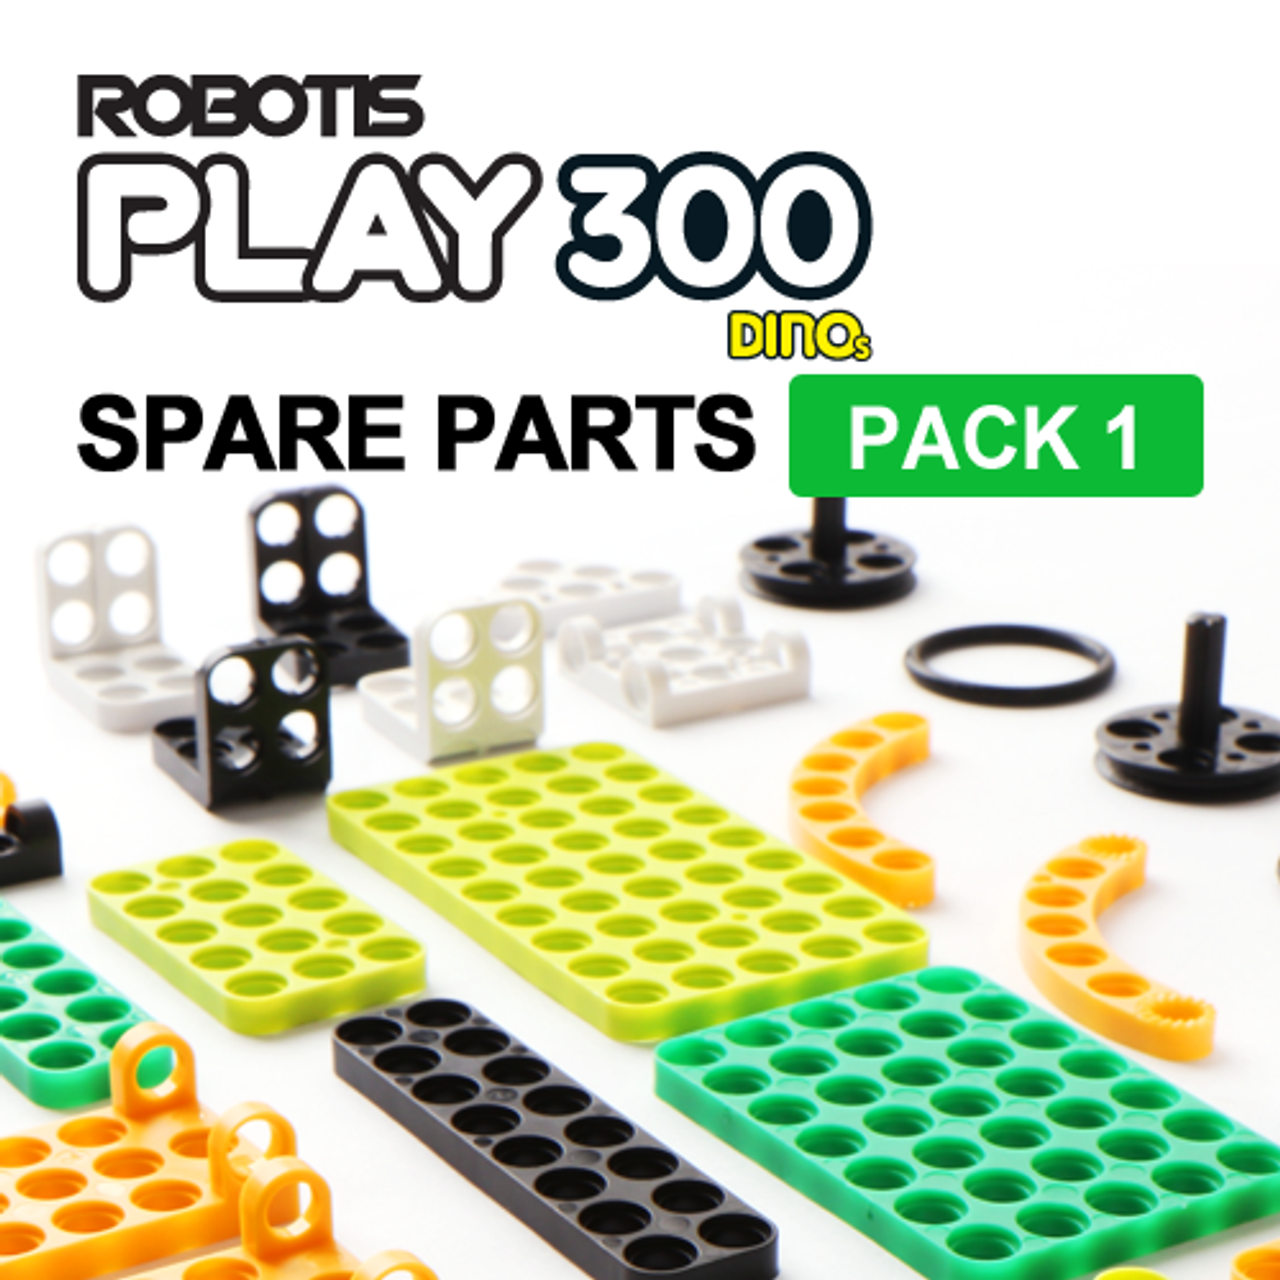 PLAY 300_Spare Parts Packs